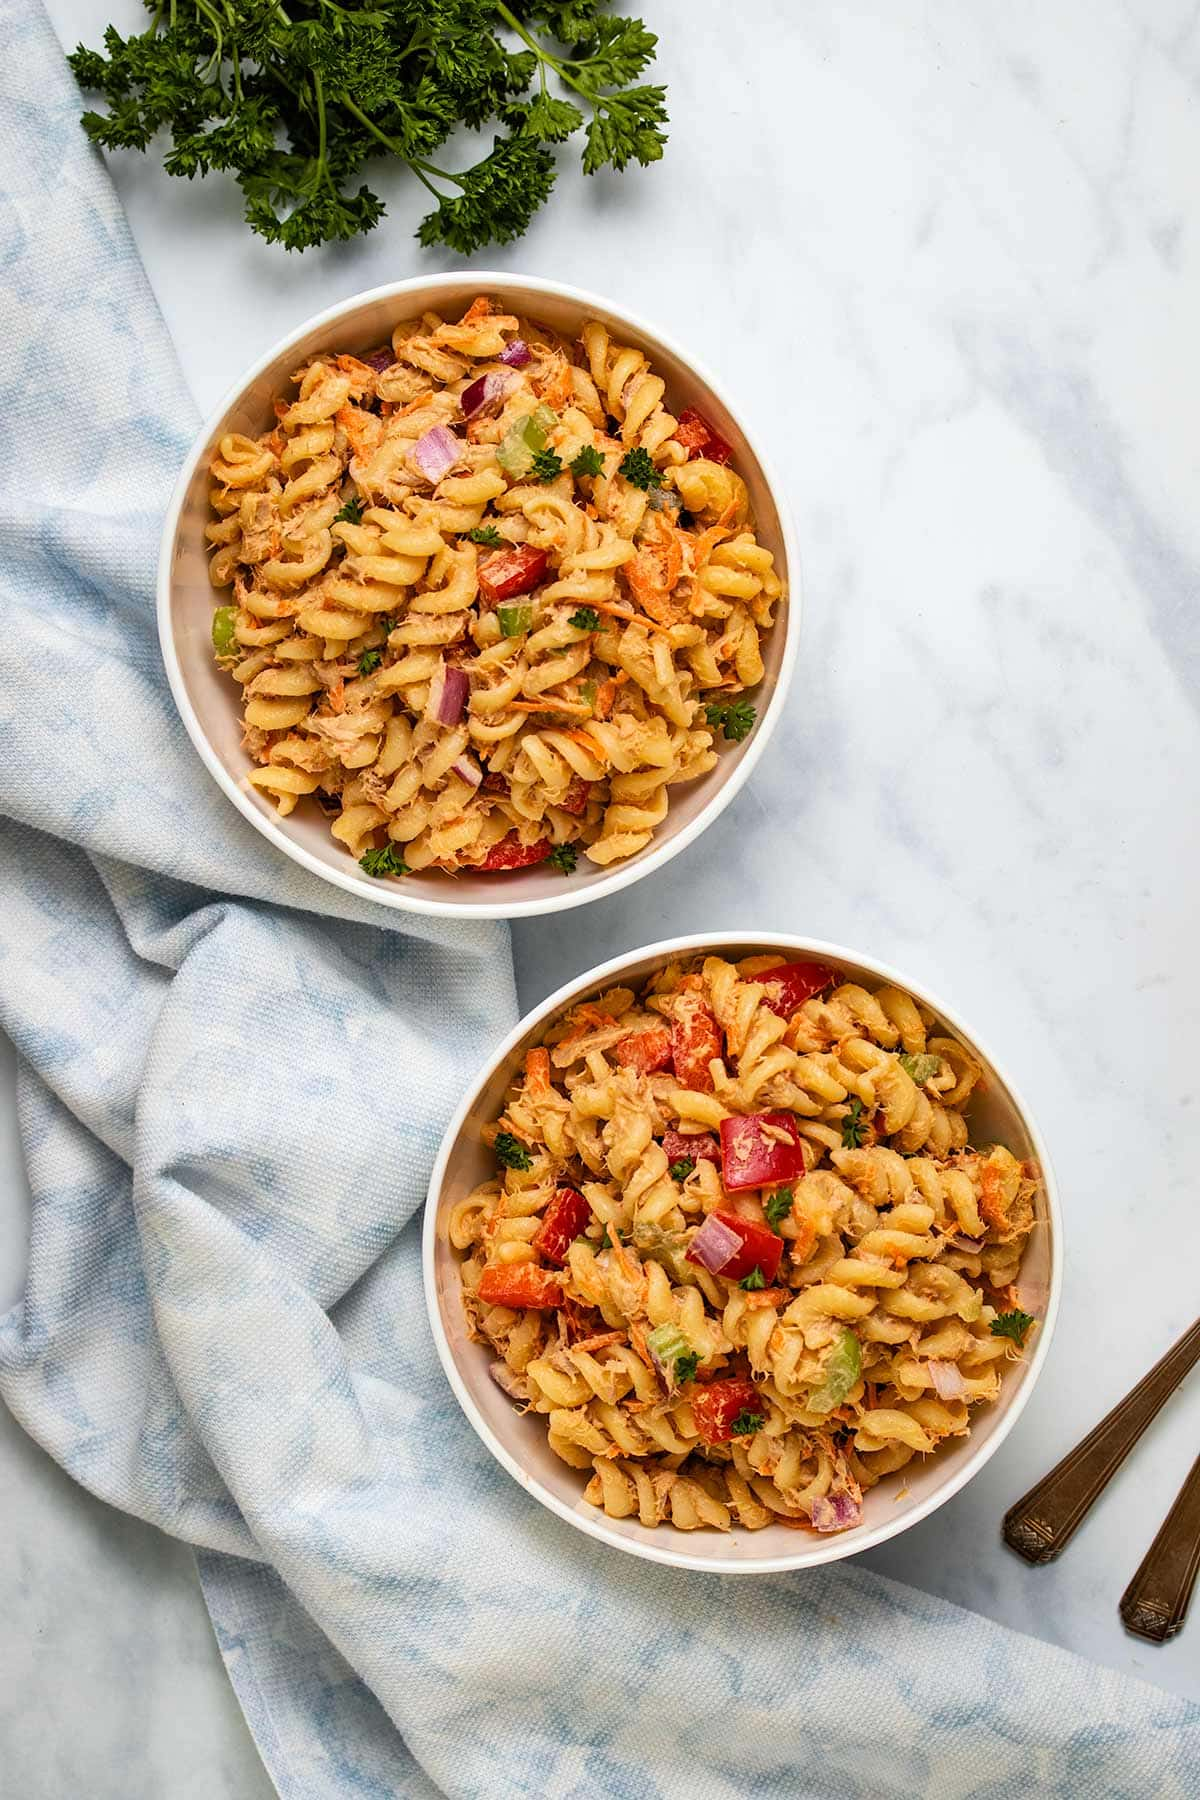 Spicy Tuna Pasta Salad in two white bowls next to a blue linen and parsley